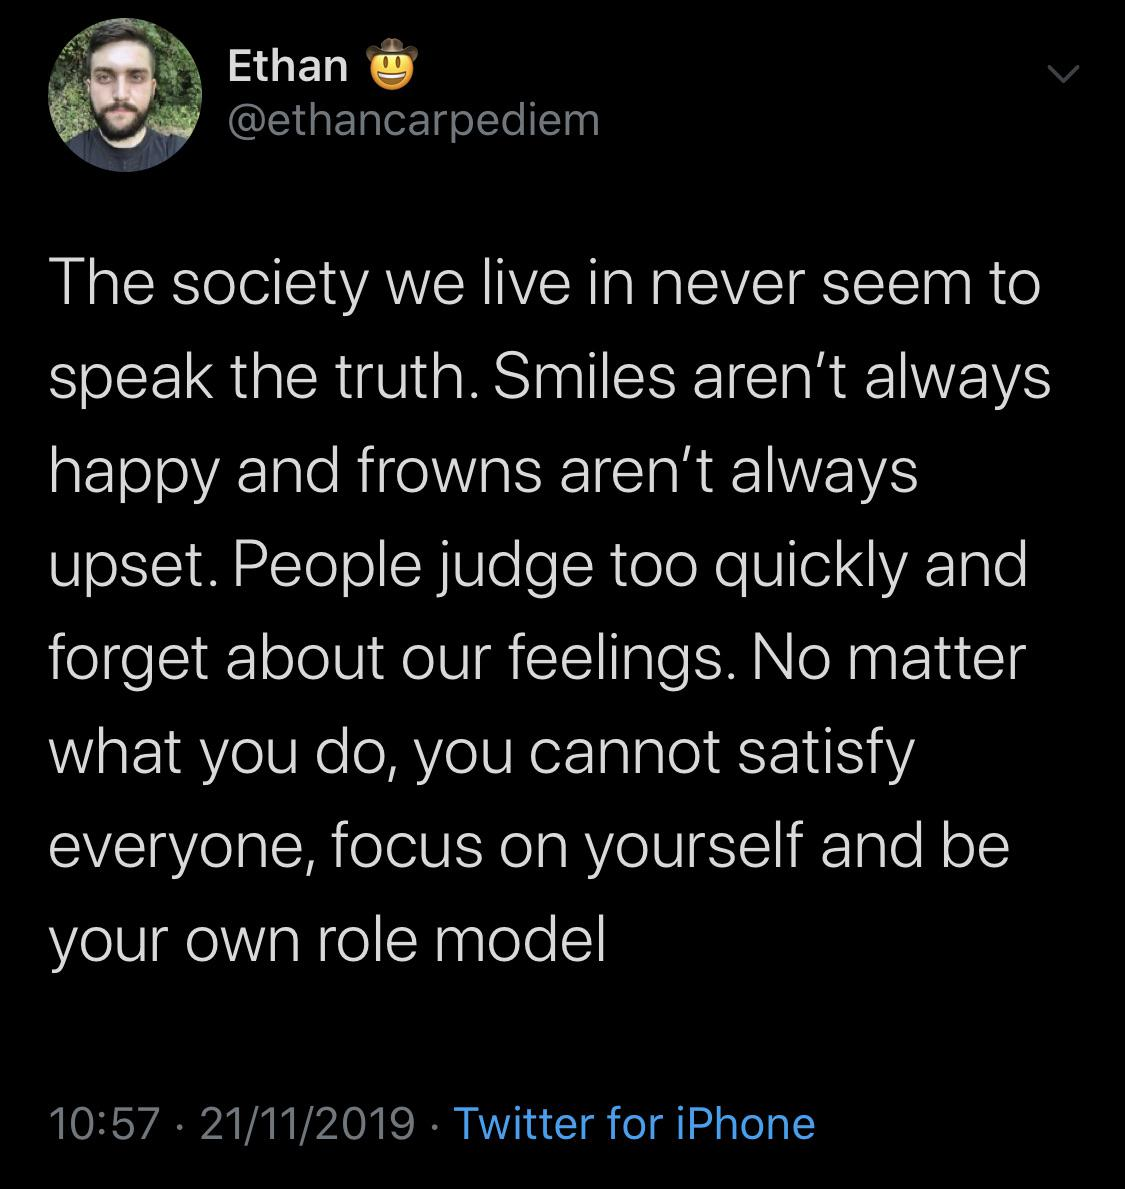 , fi. Ethan i @ethanoarpediem The society we live in never seem to speak the truth. Smiles aren't always happy and frowns aren't always upset. People judge too quickly and forget about our feelings. No matter what you do, you cannot satisfy everyone, focus on yourself and be your own role model 10257 - 21/11/2019 ~ Twitter https://inspirational.ly